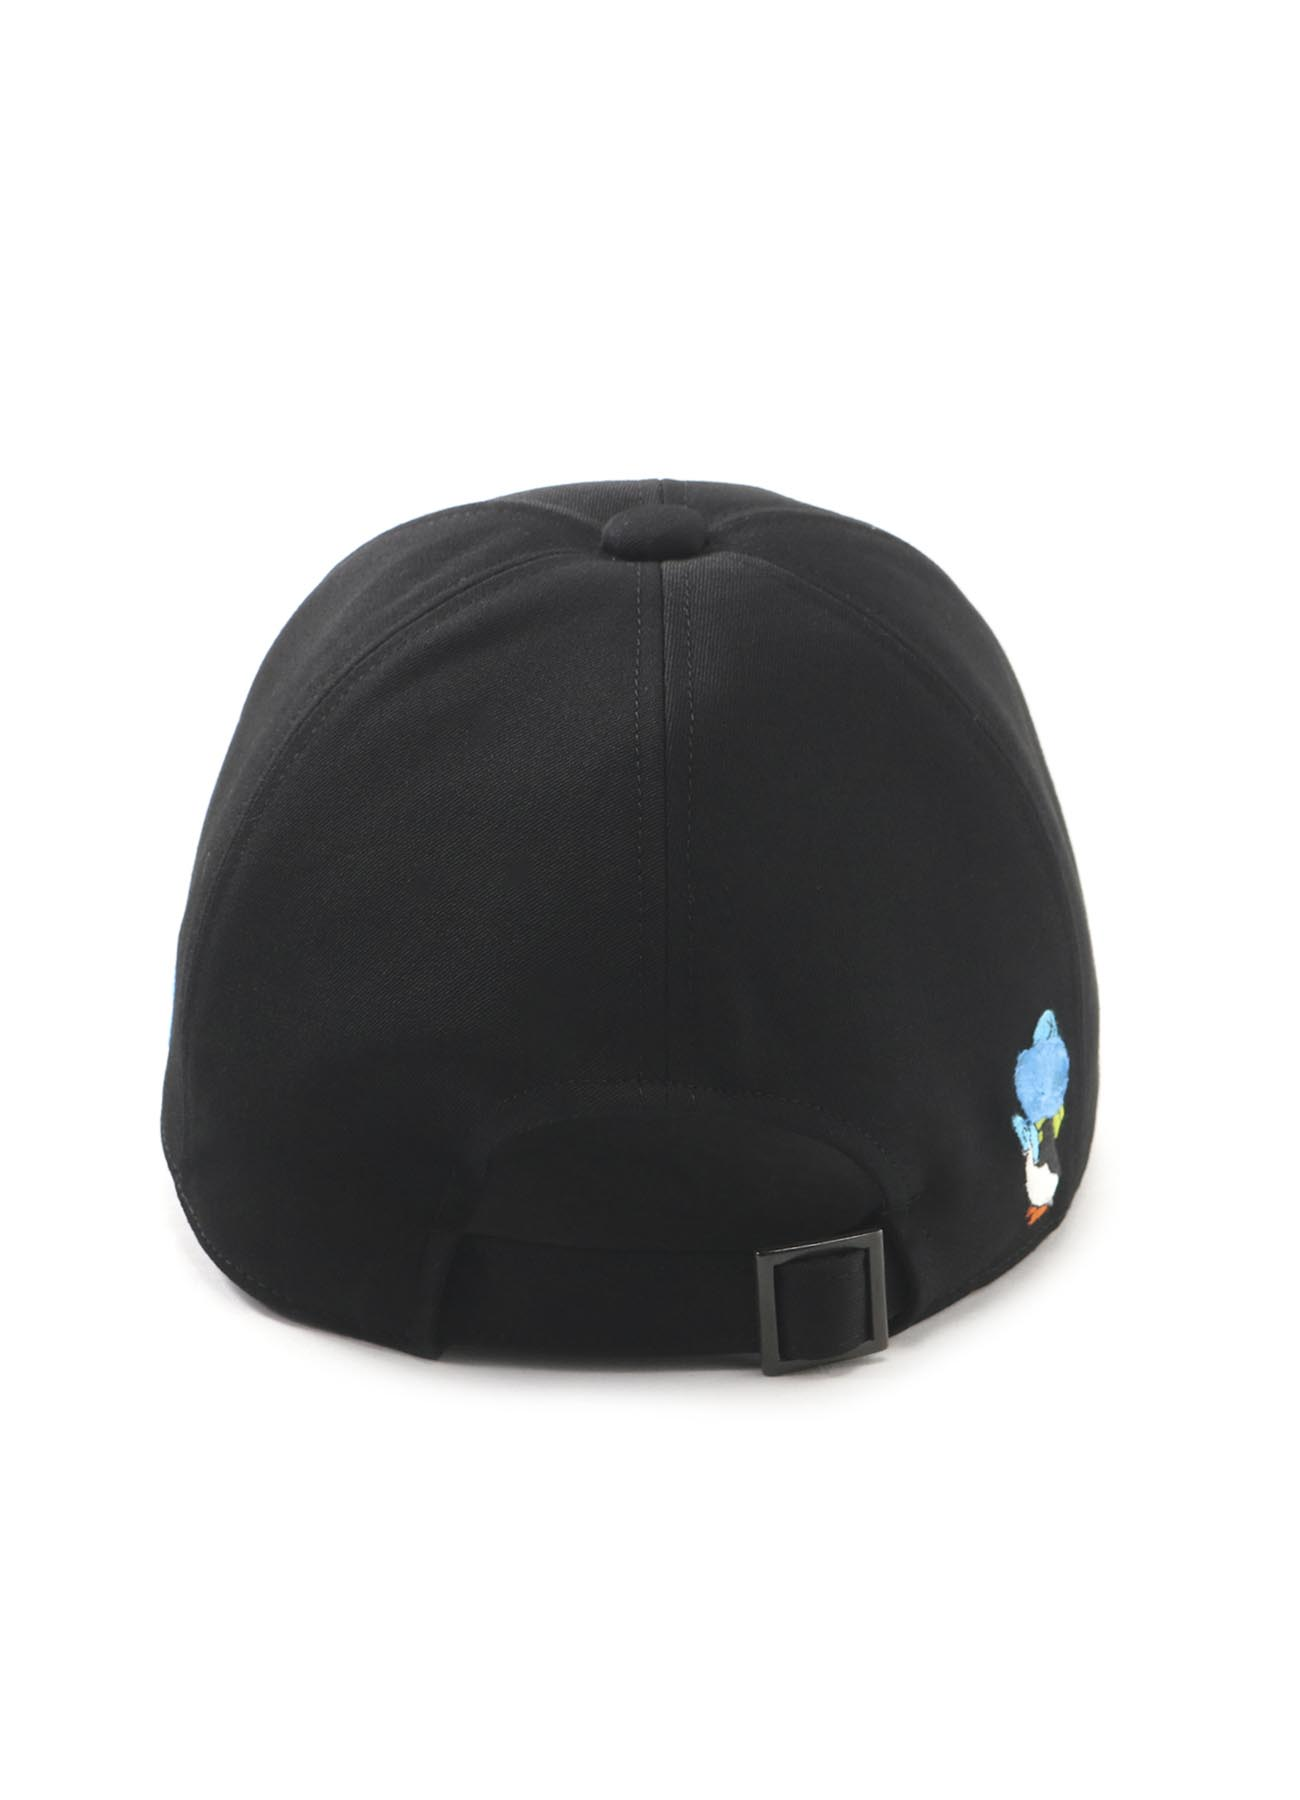 Naoya Inose Collection Hat - Signature